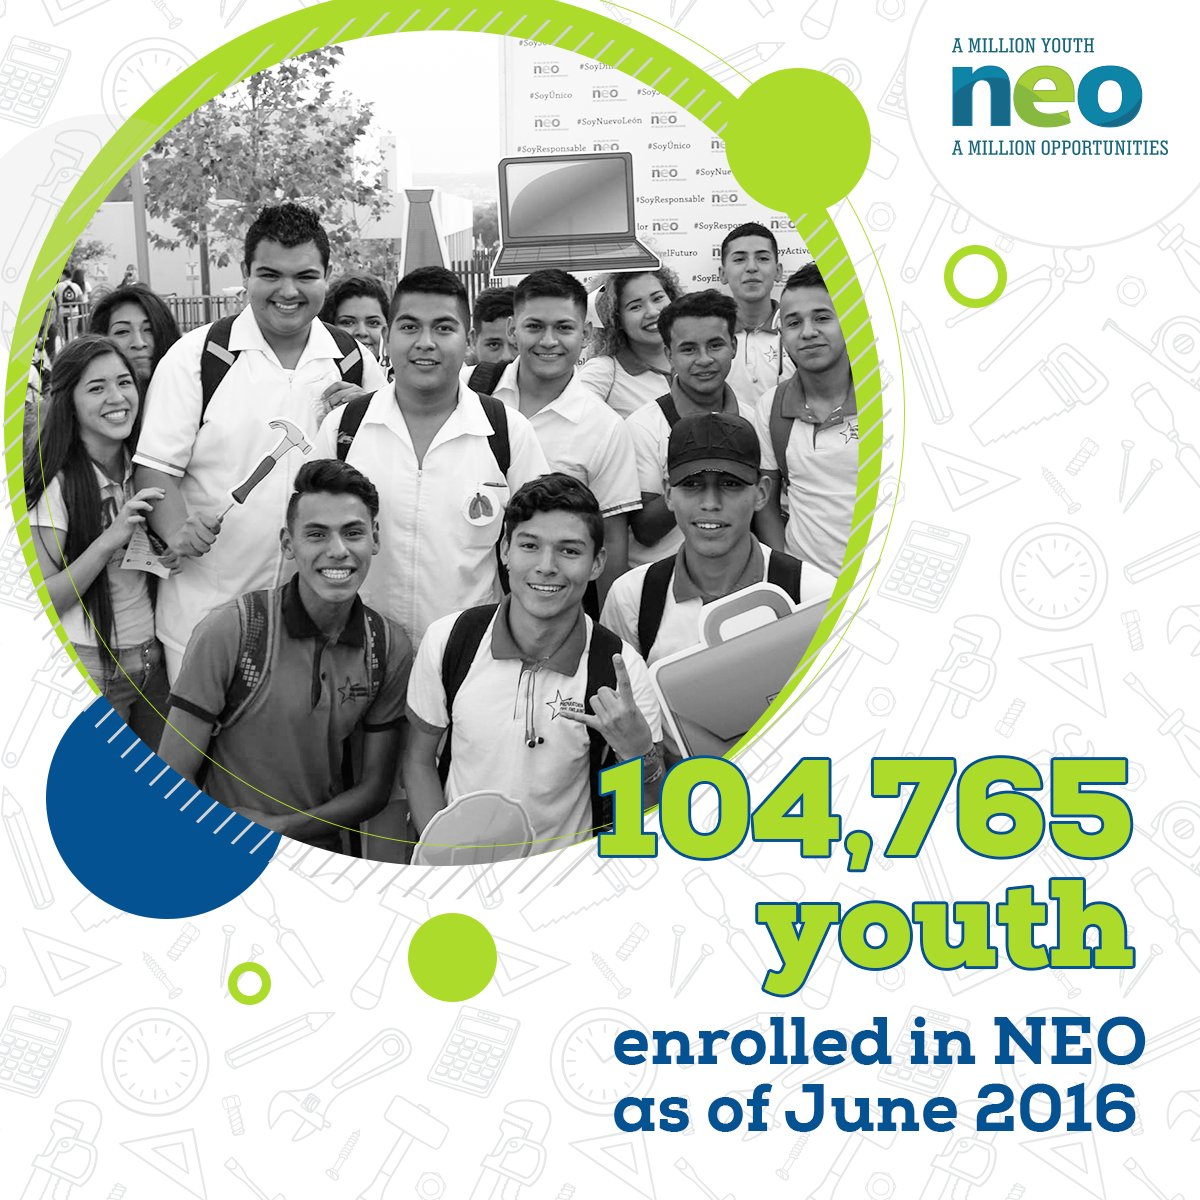 NEO is increasing opportunities for disadvantaged #youth to secure decent employment @jovenesNEO #YoSoyNEO https://t.co/JPZWtBSODF